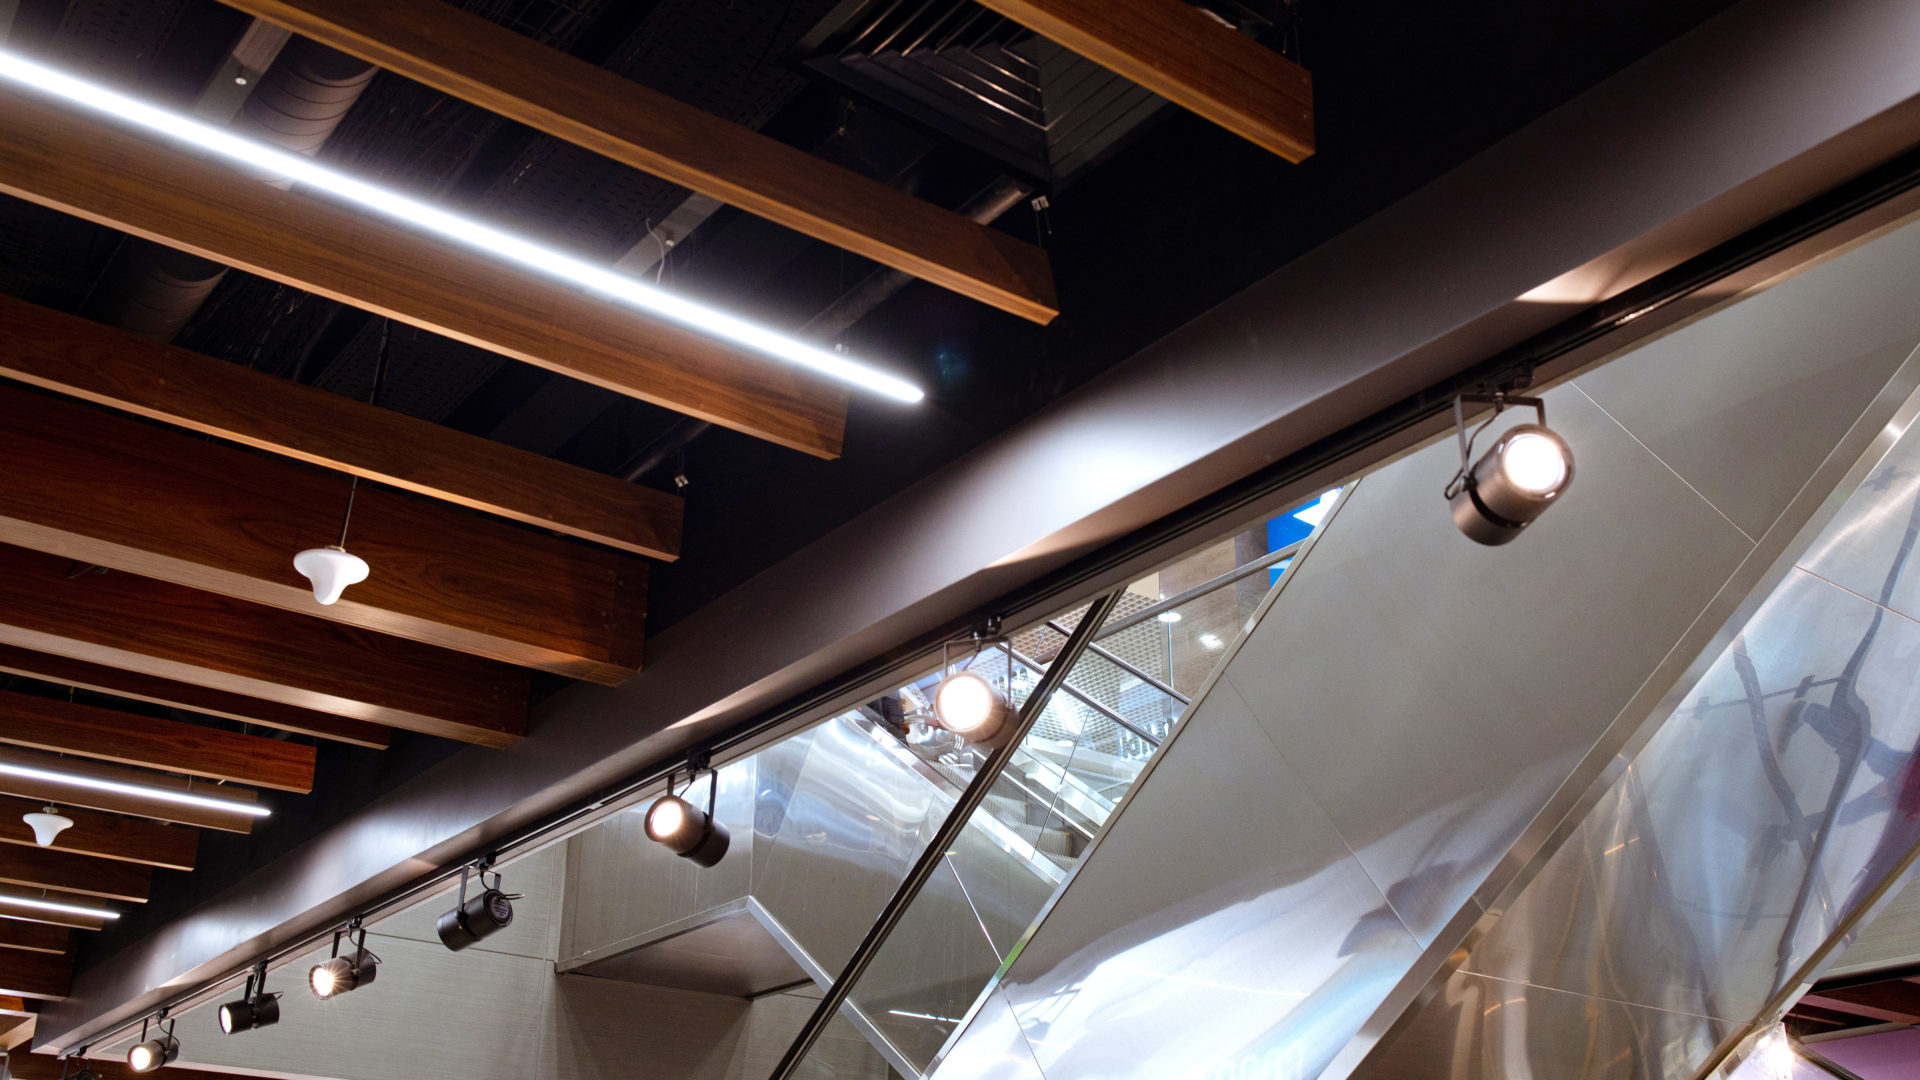 Shopping center led lighting. Ceiling lights in the mall. Ventilation and fire alarm system.